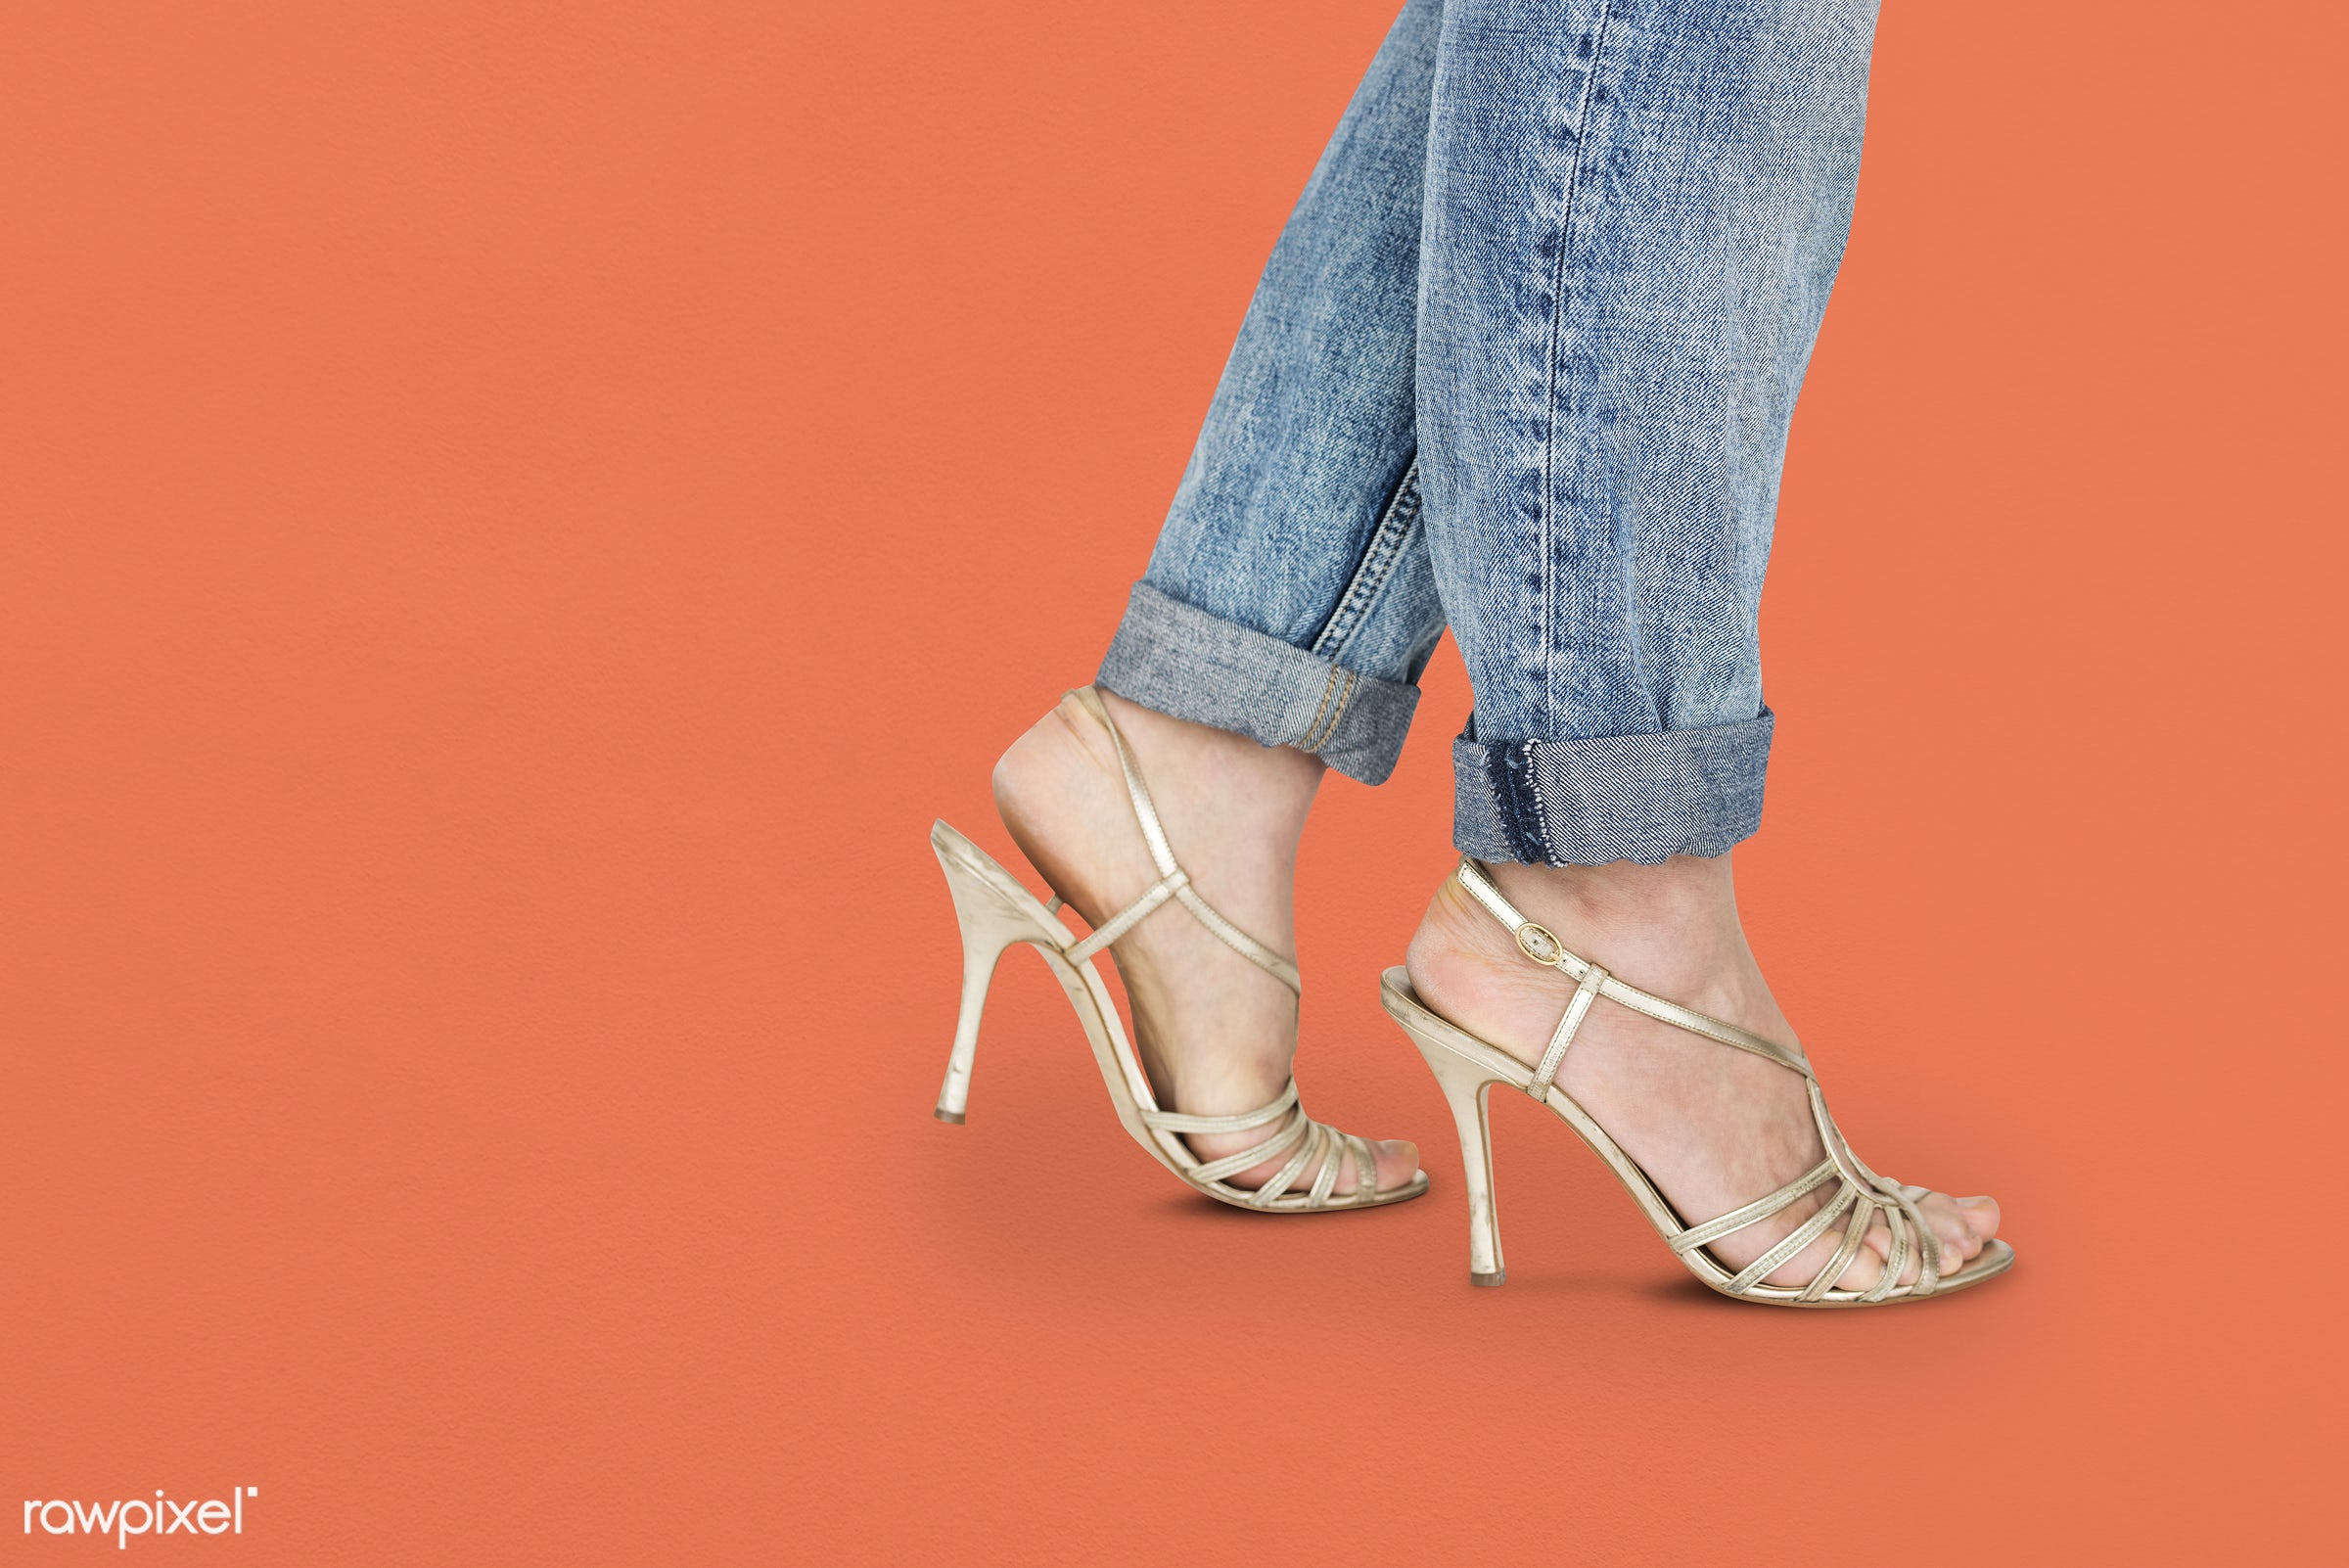 studio, fashion, model, person, people, race, style, solo, woman, lifestyle, casual, feminism, shoes, isolated, orange,...